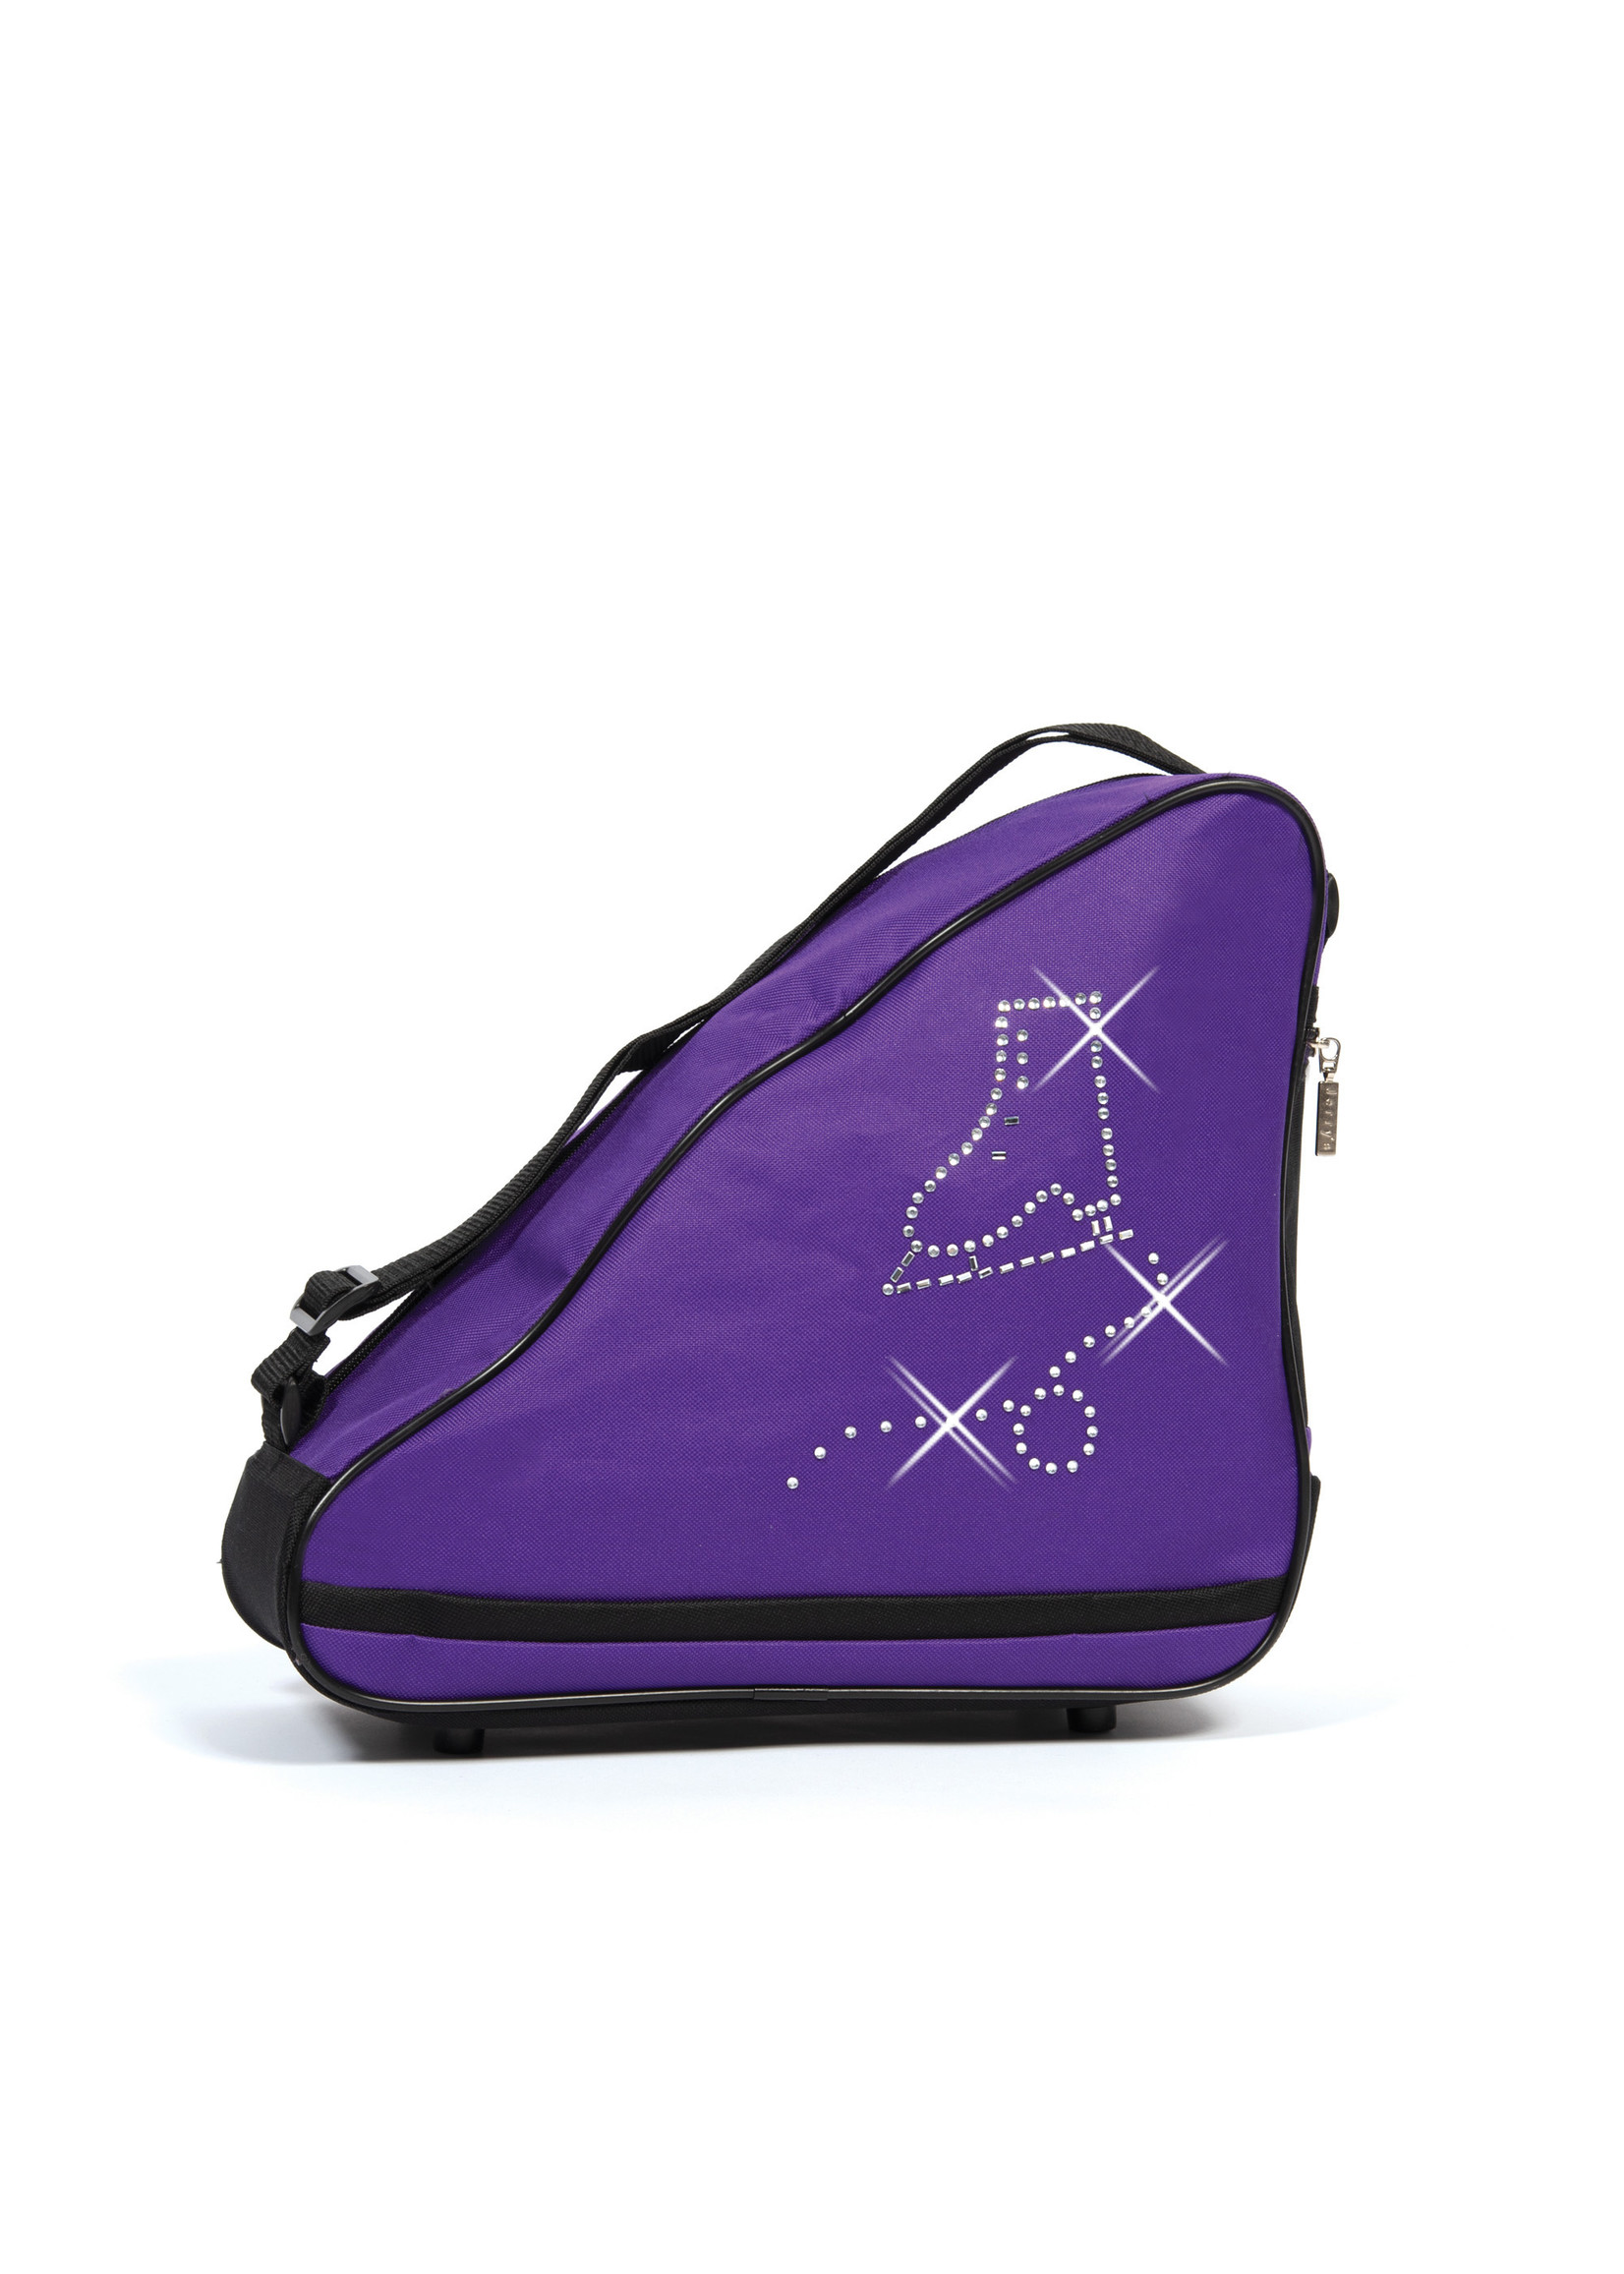 JERRY'S CRYSTAL SAC PATINS PATINAGE ARTISTIQUE